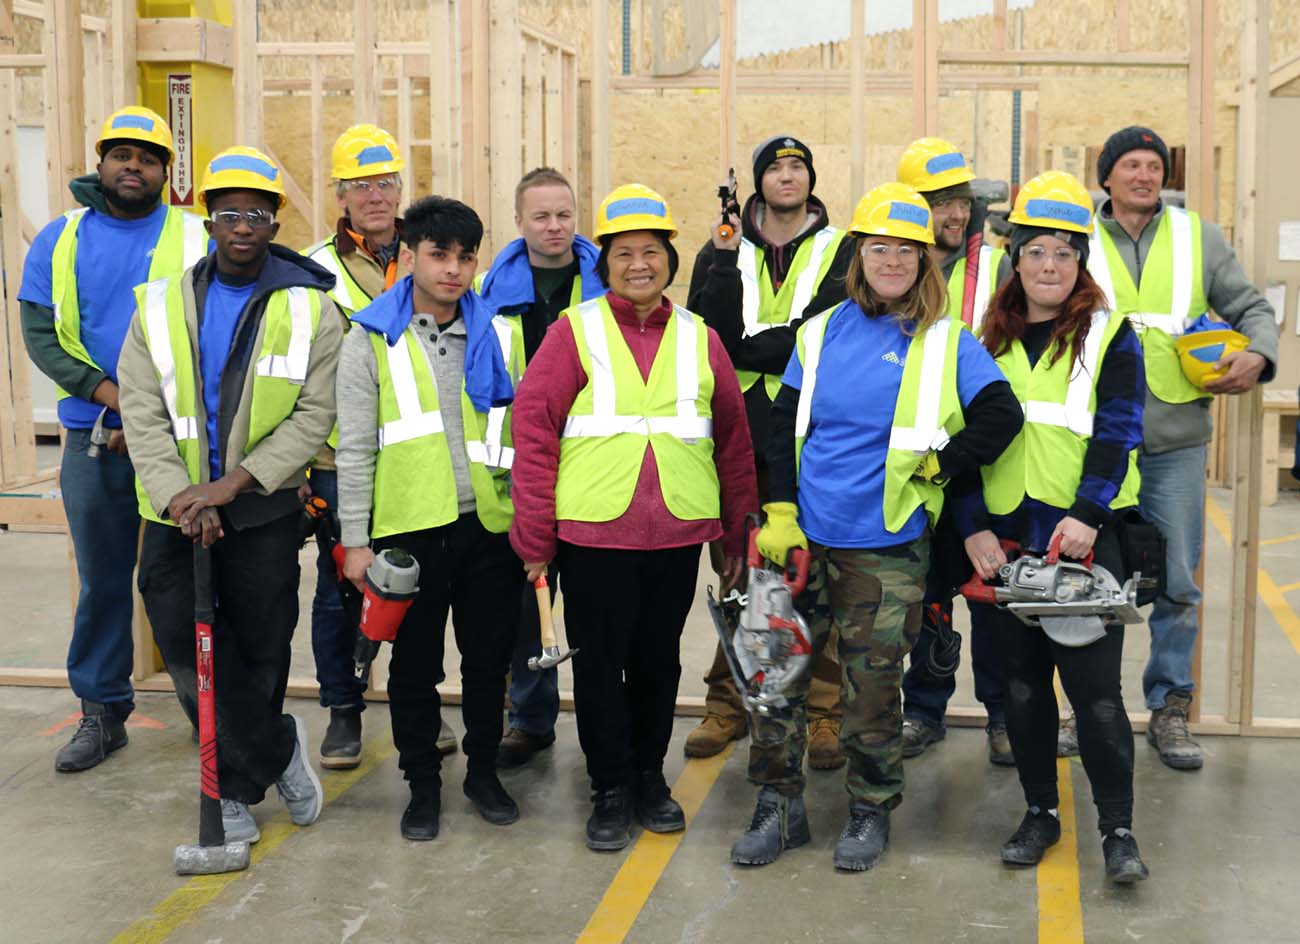 About 20 new students enroll in job training at Colorado Homebuilding Academy every month. They're training for entry-level jobs in construction.